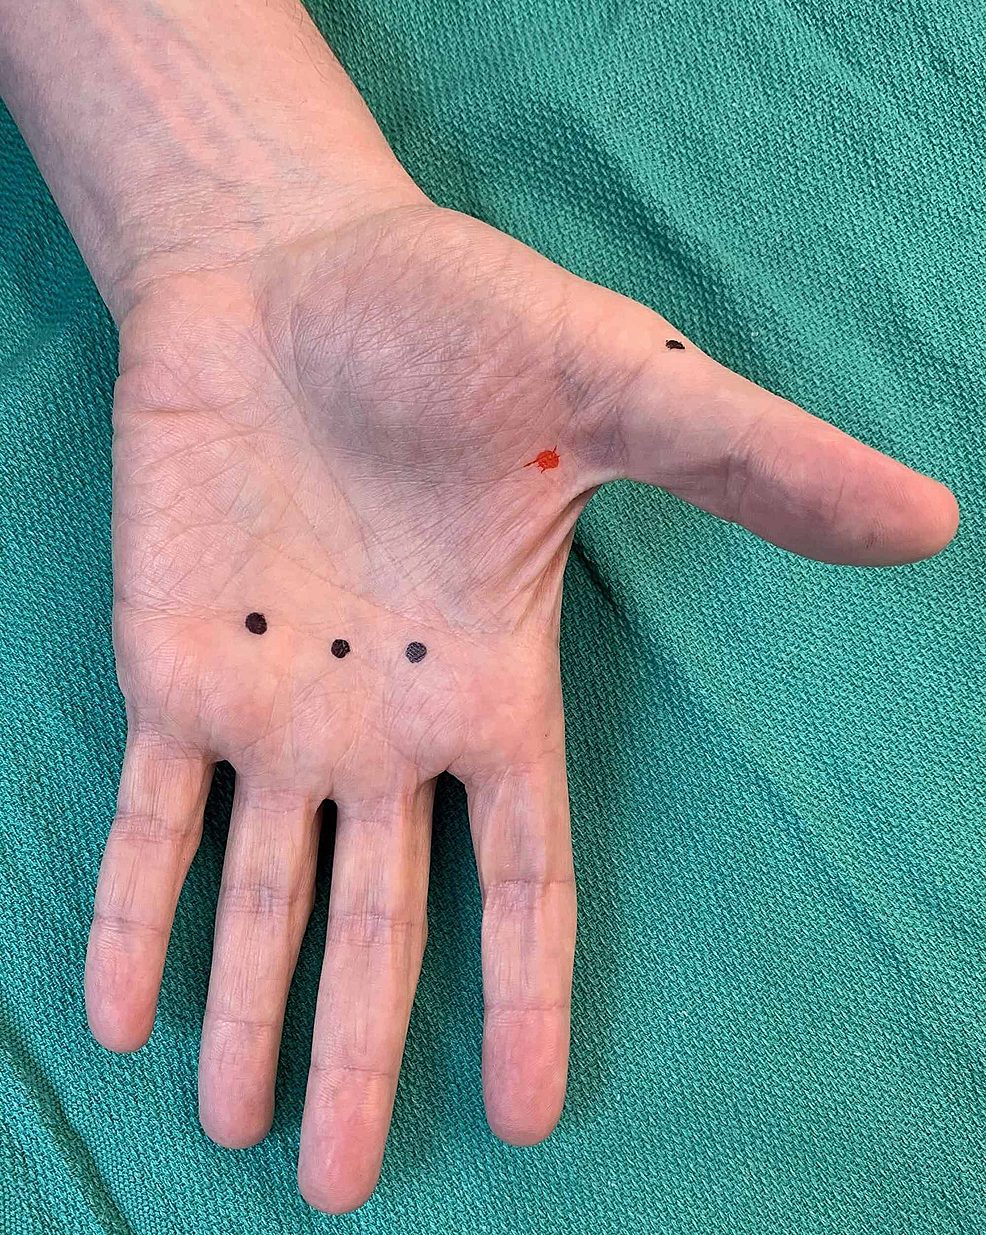 Example-of-correct-(black-dots)-and-incorrect-(red-dot)-placement-of-injections-in-relation-to-metacarpophalangeal-joints-(palmar-aspect-of-left-hand)